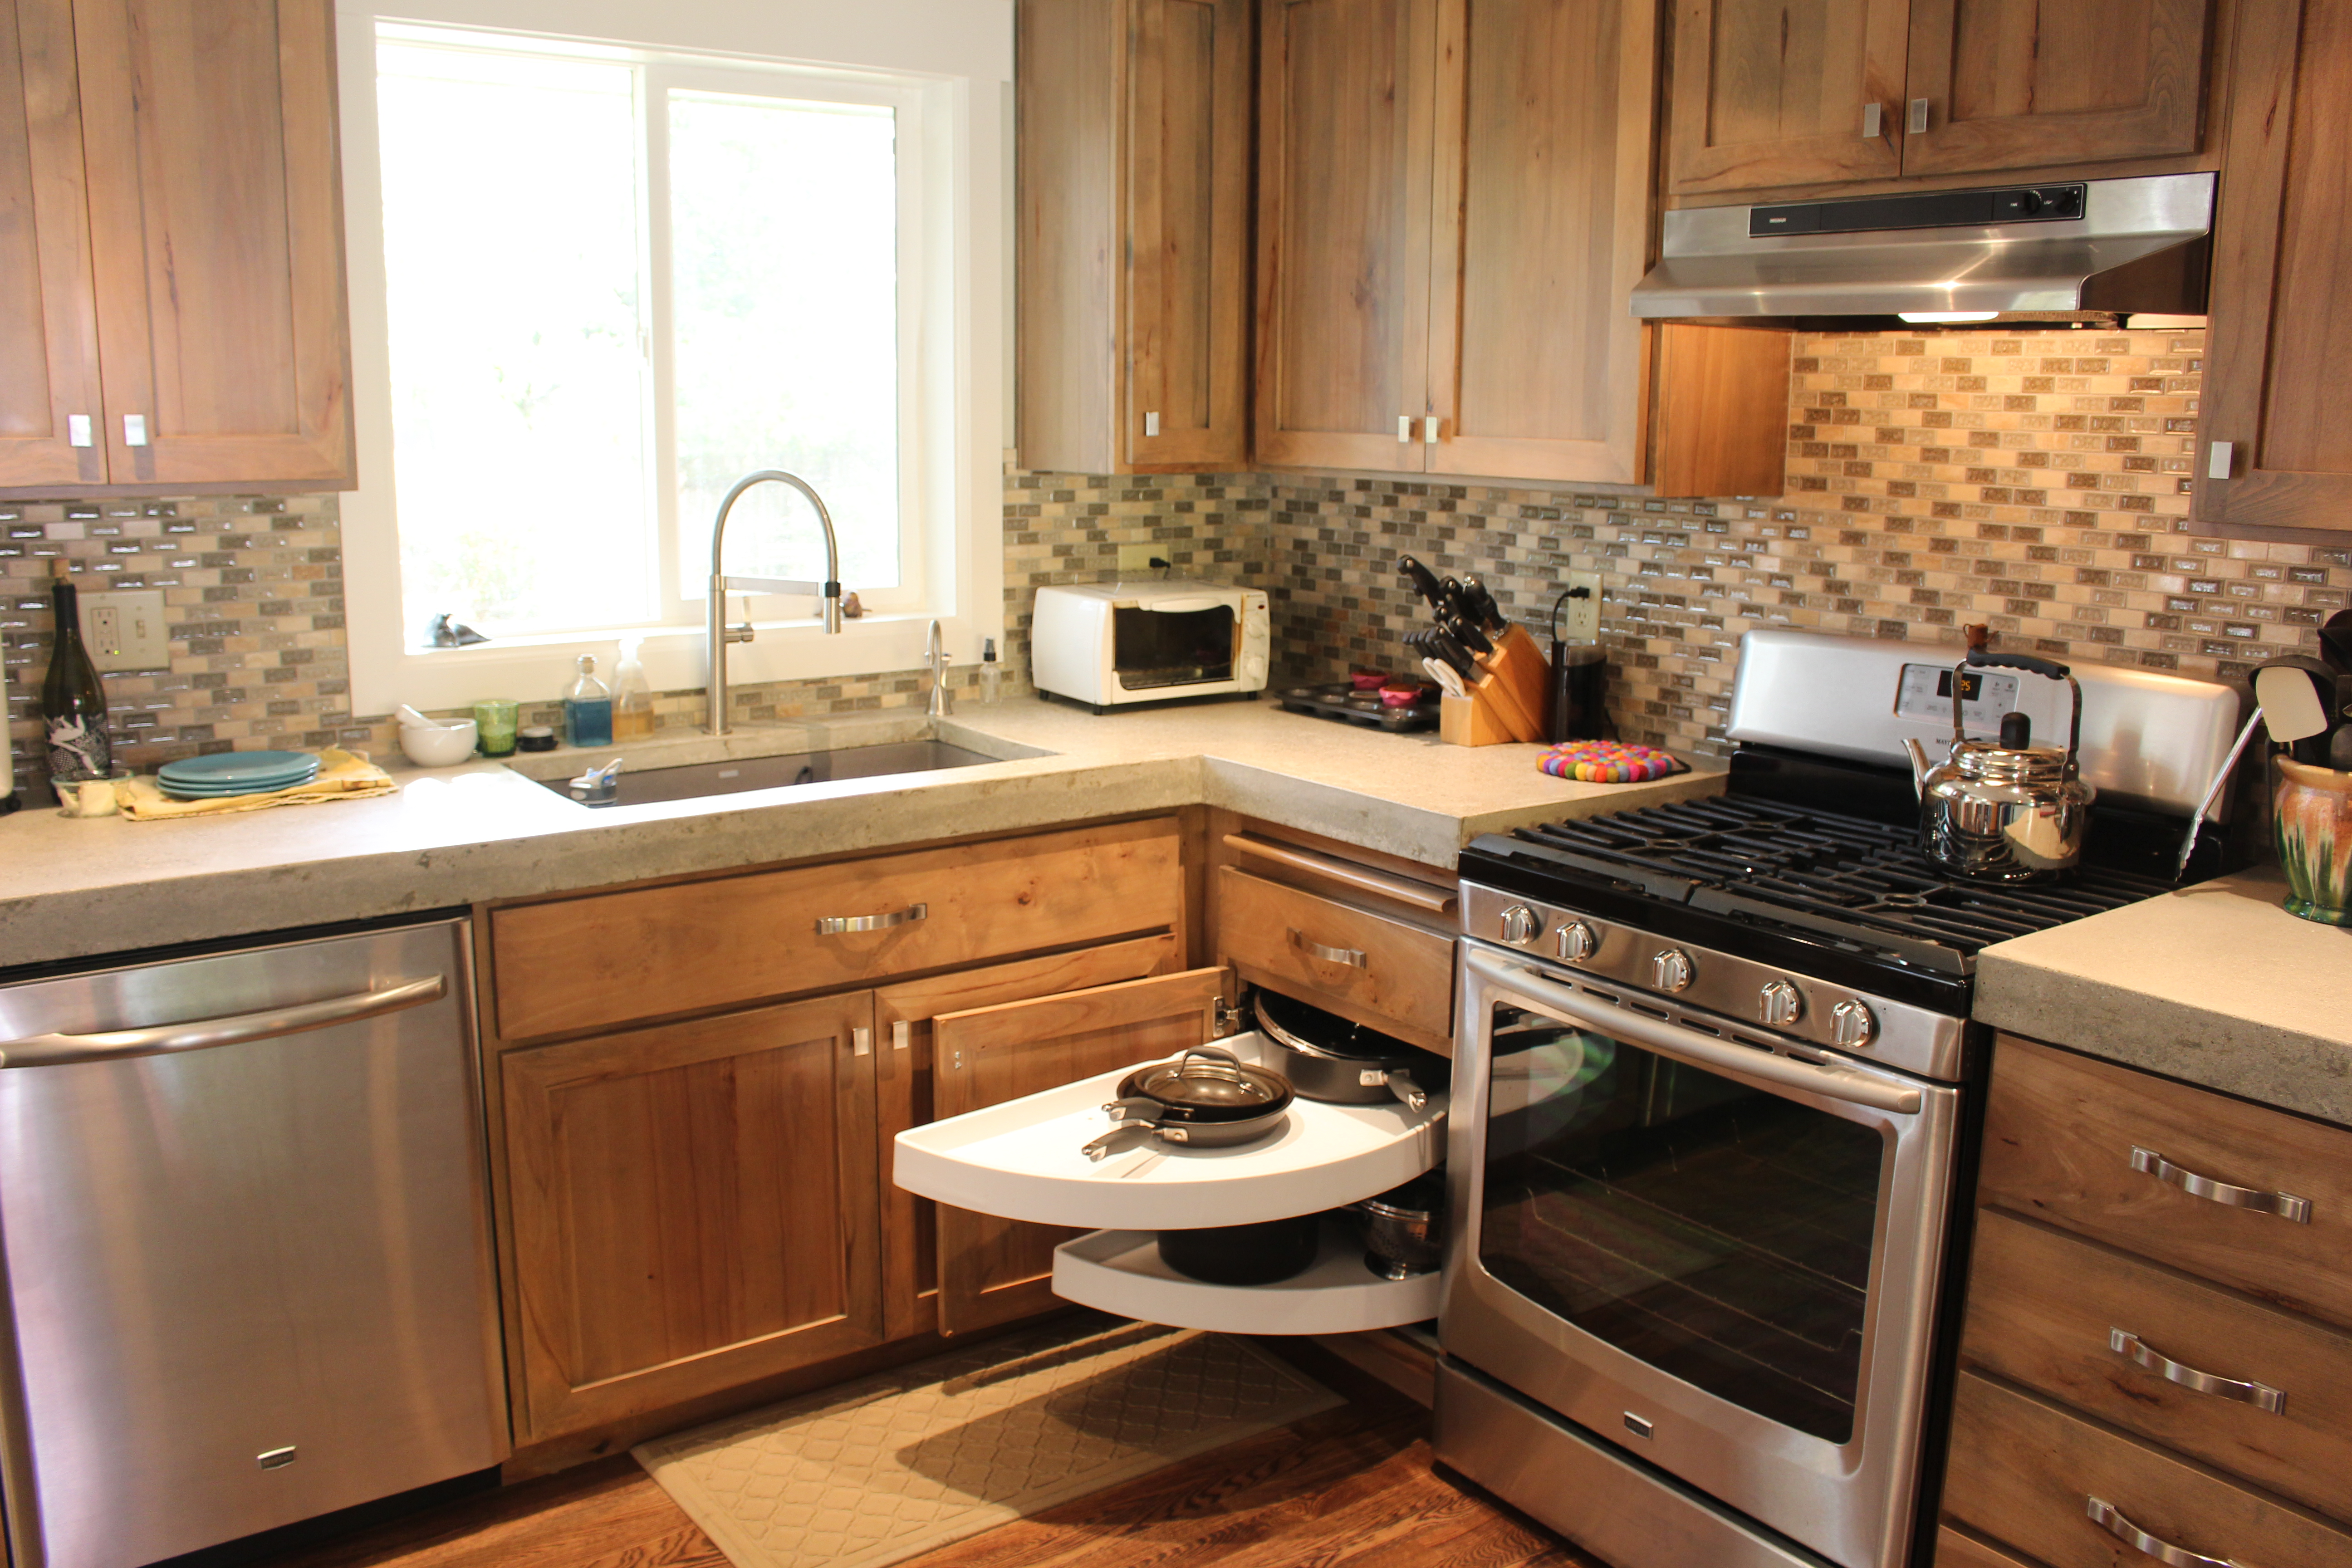 Kitchen Cabinet Upgrades Home Remodeling Boise Idaho